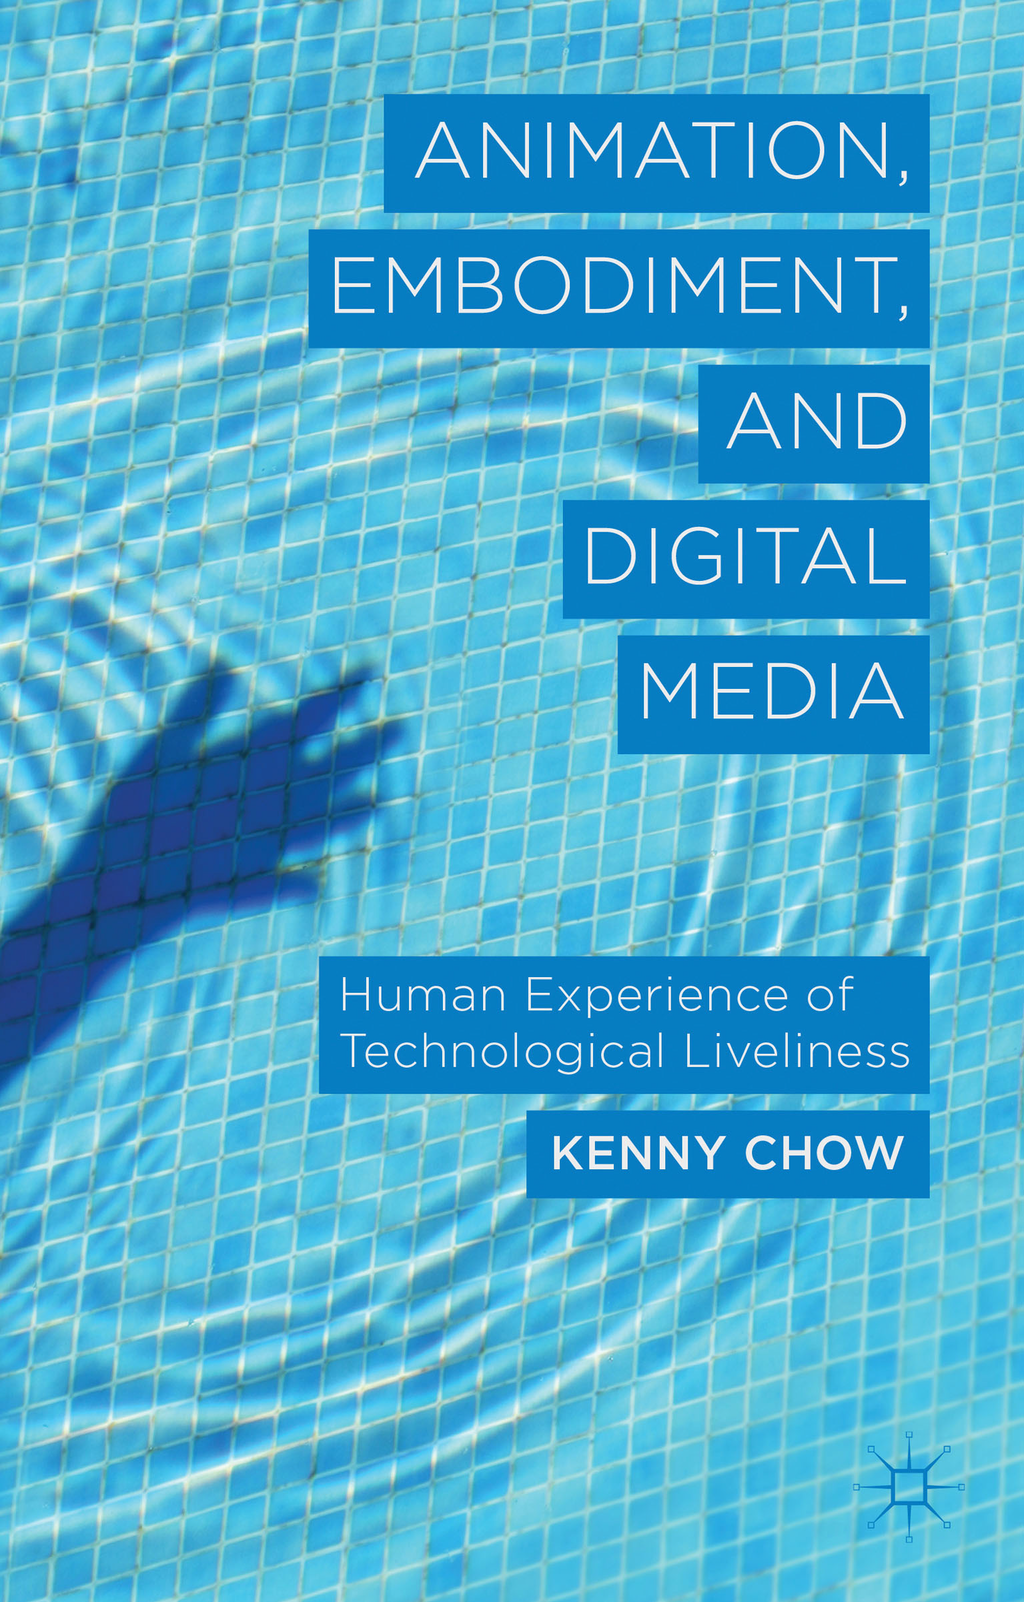 Animation,  Embodiment,  and Digital Media Human Experience of Technological Liveliness